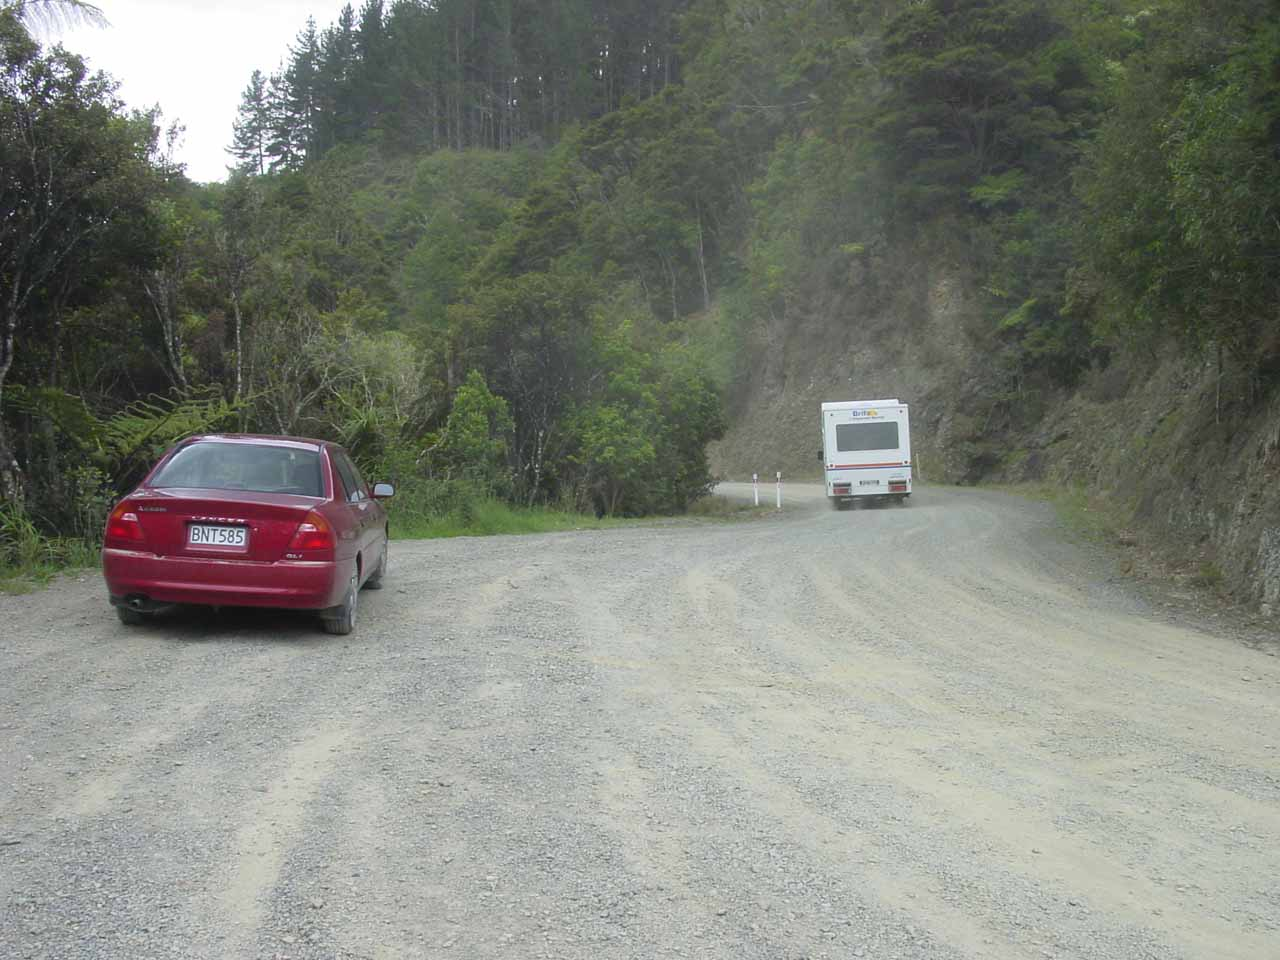 Pulling over for the trailhead for Piroa Falls